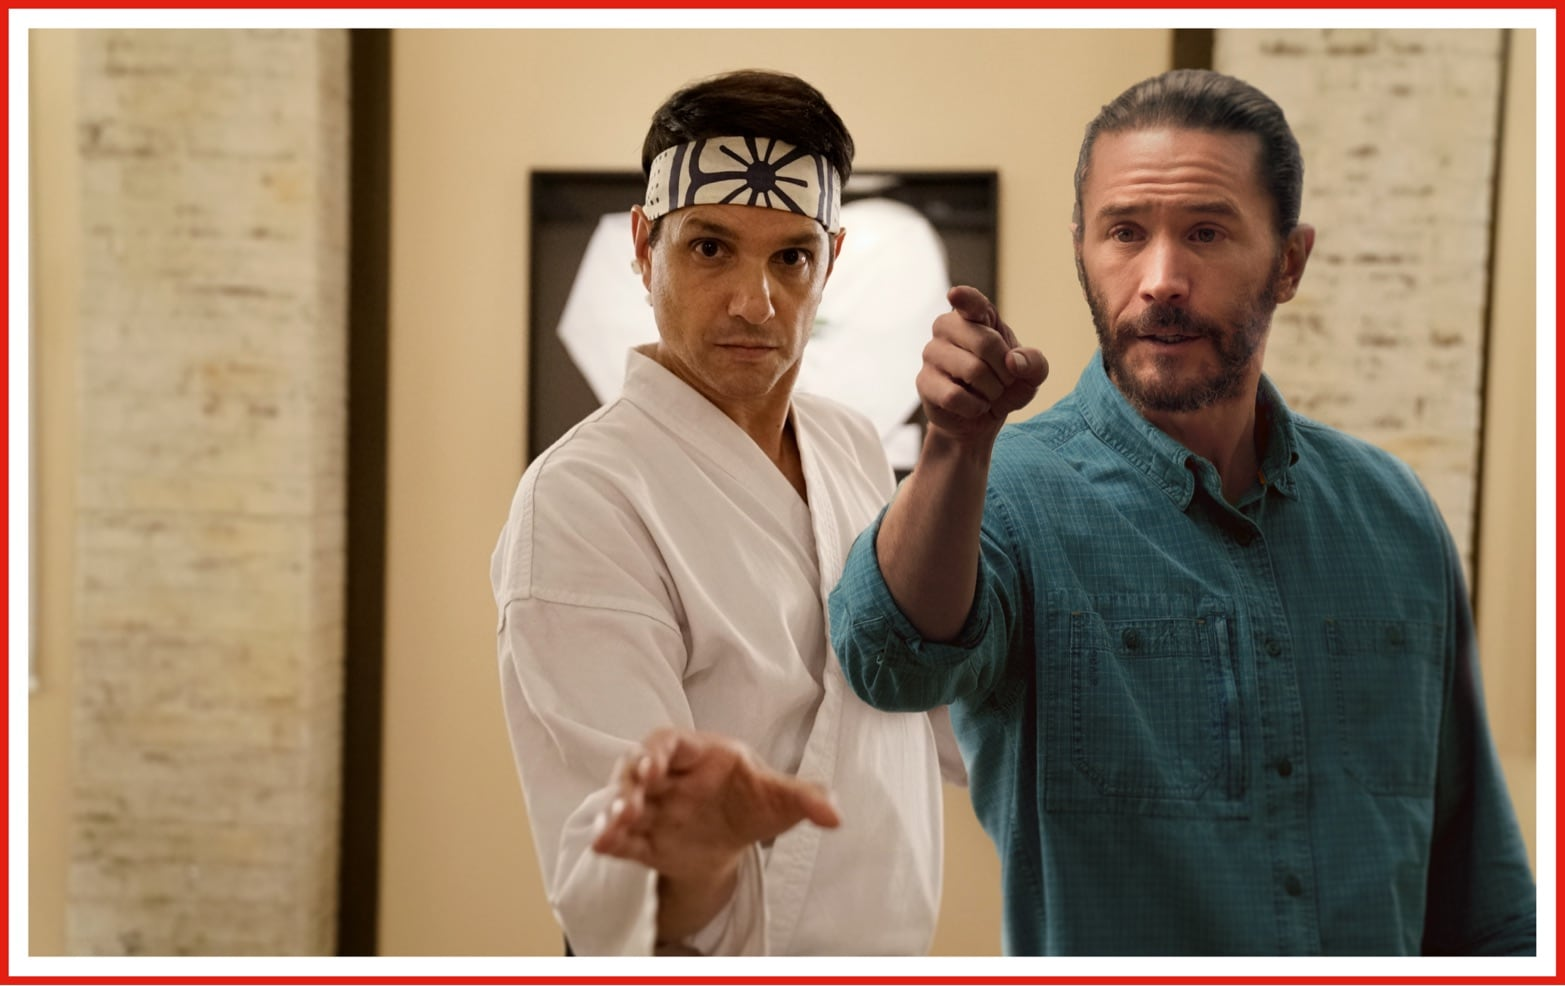 Tom Pelphrey as Ben Davis from Ozark makes an imagined cameo in one of his favorite series this year, Cobra Kai.